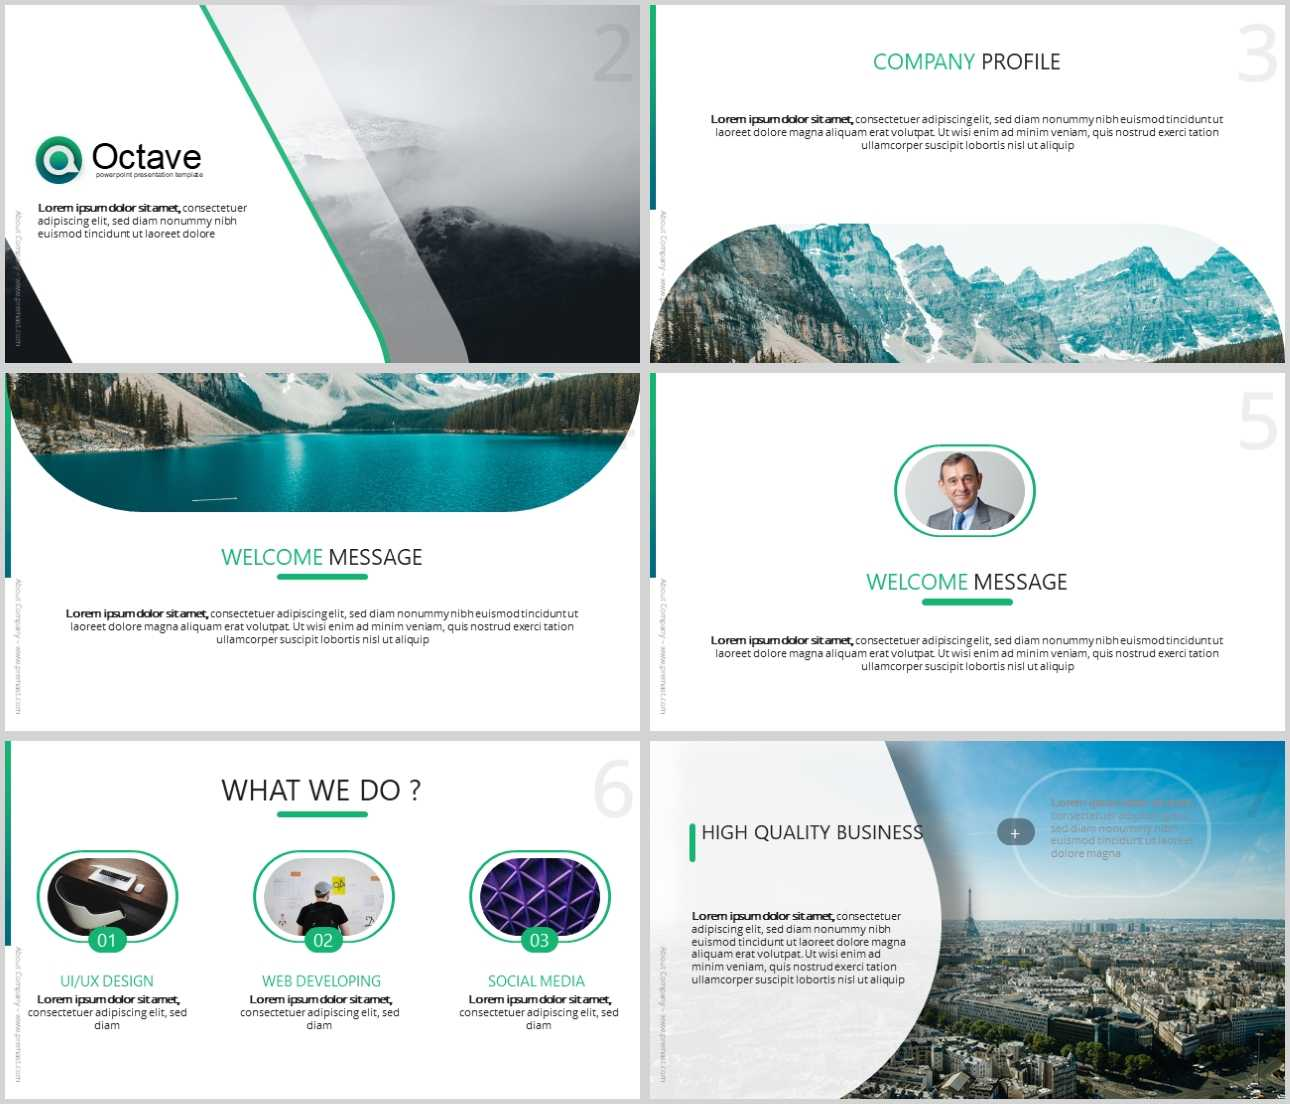 Octave Free Powerpoint Presentation Template - Just Free Slides Inside Tourism Powerpoint Template